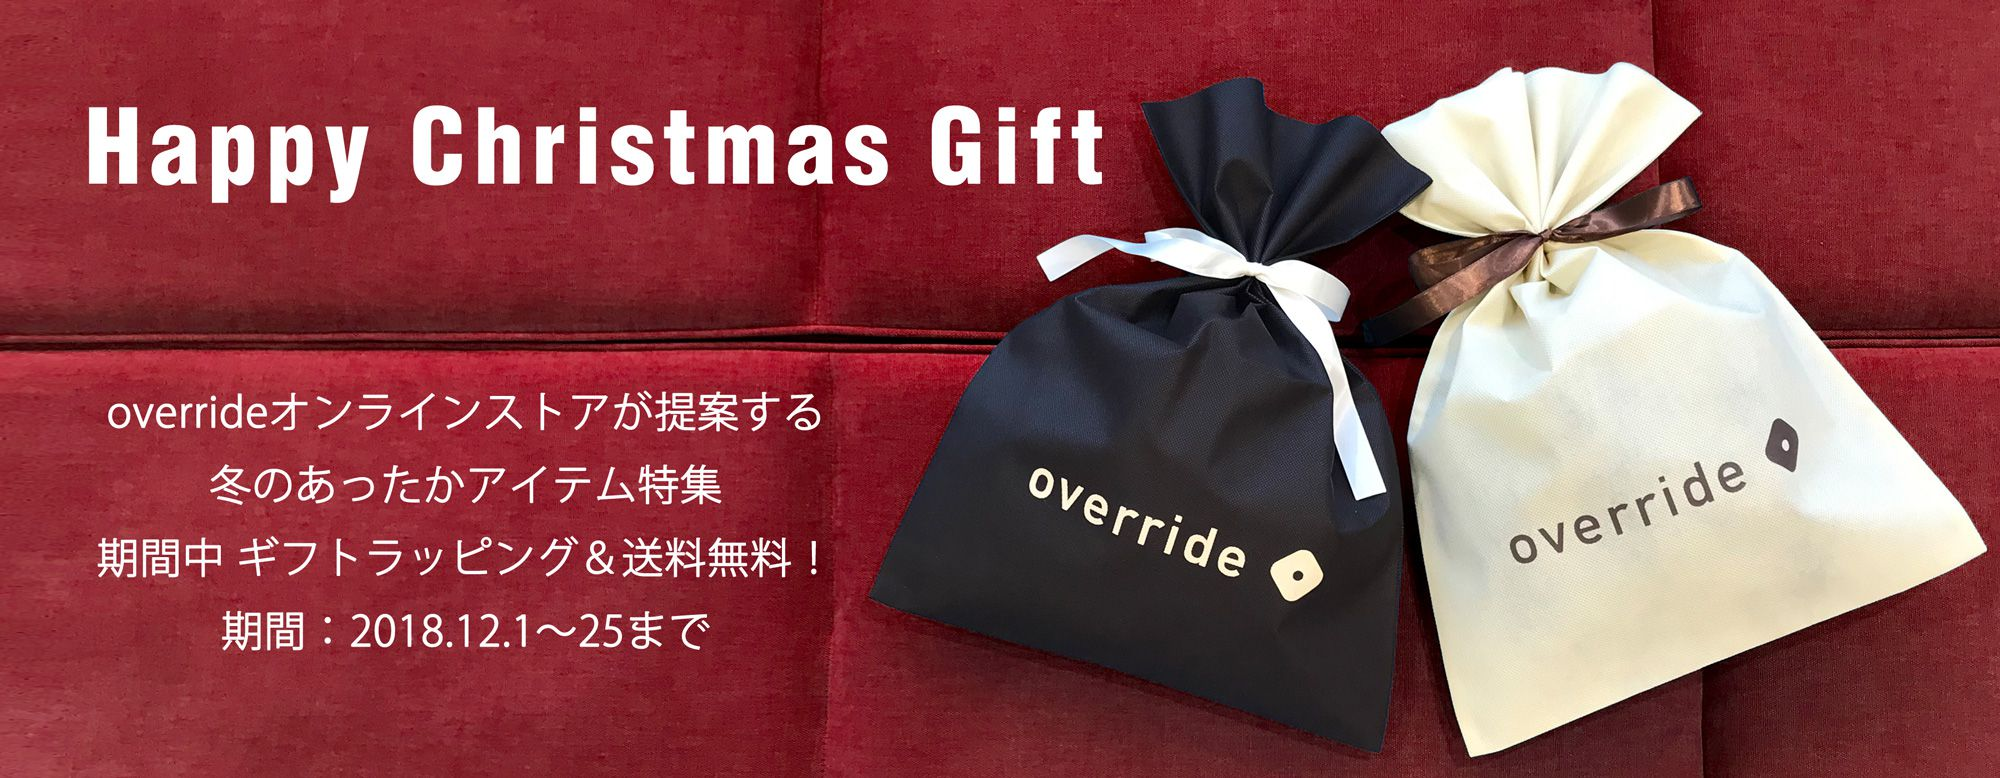 「 Happy Christmas Gift 」